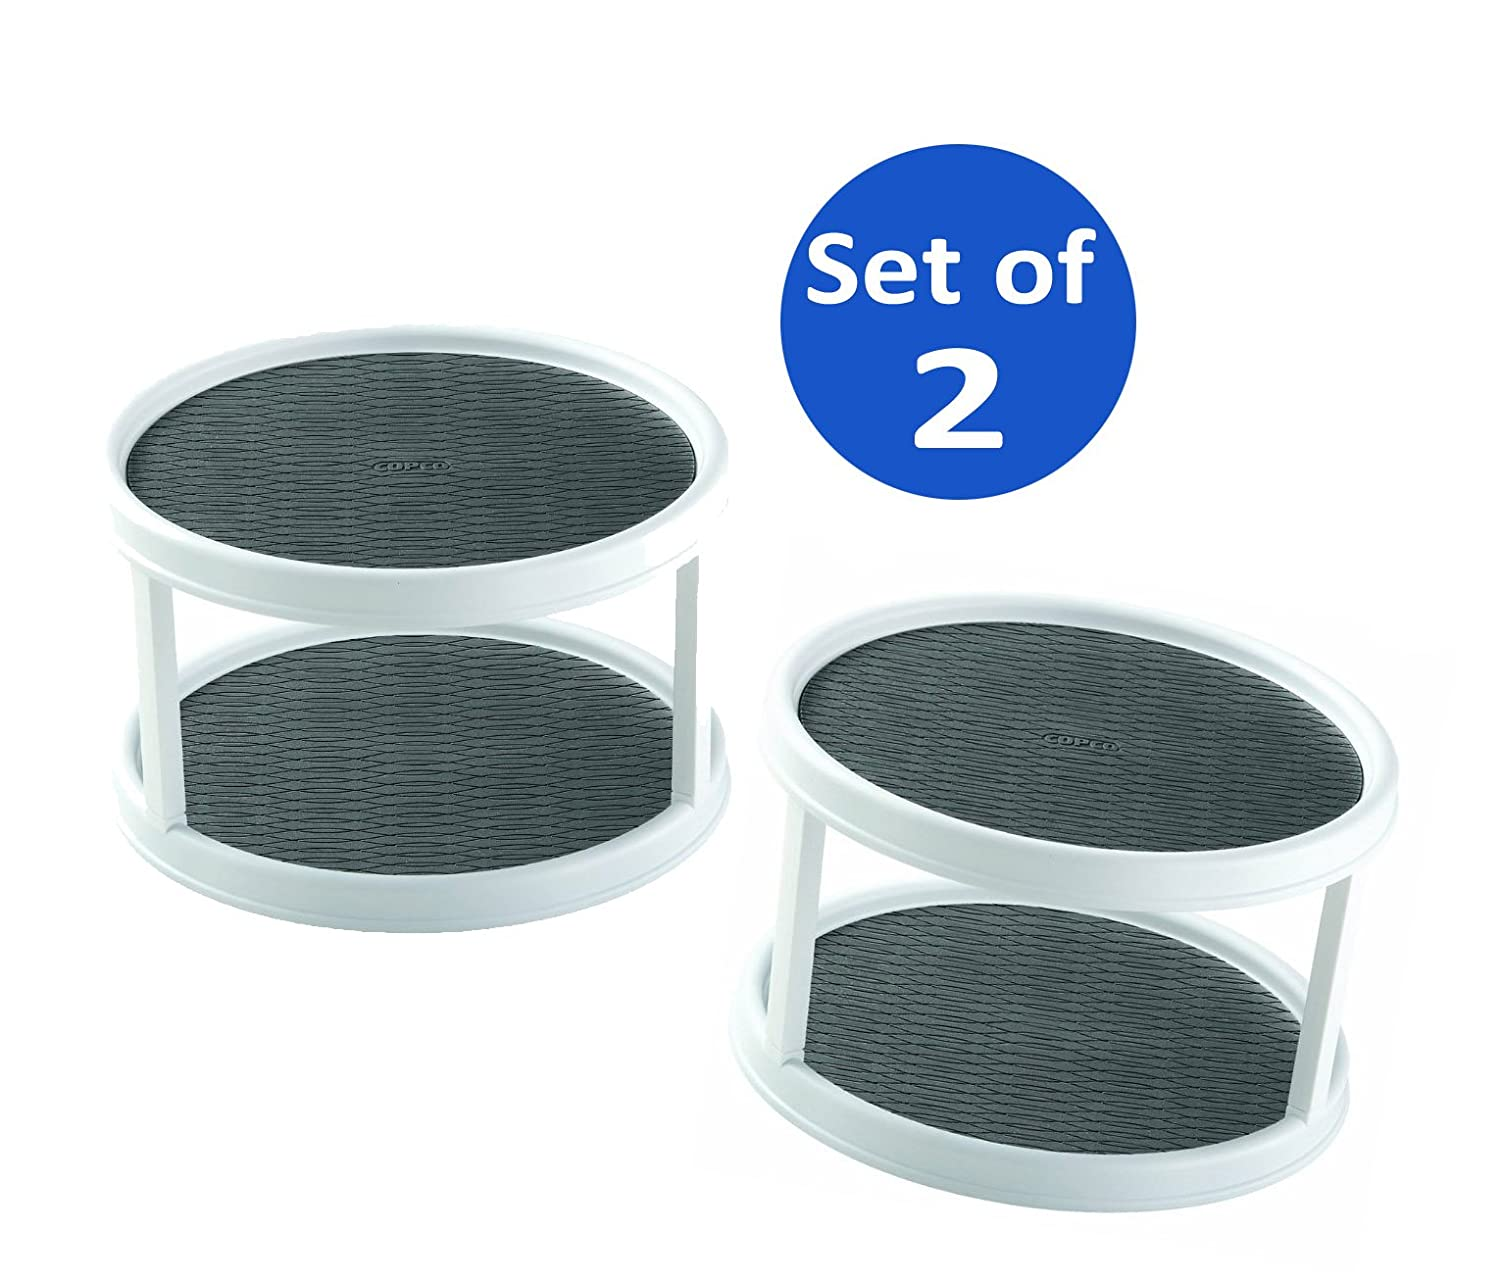 amazoncom copco nonskid 2tier cabinet turntable 12inch set of 2 home u0026 kitchen